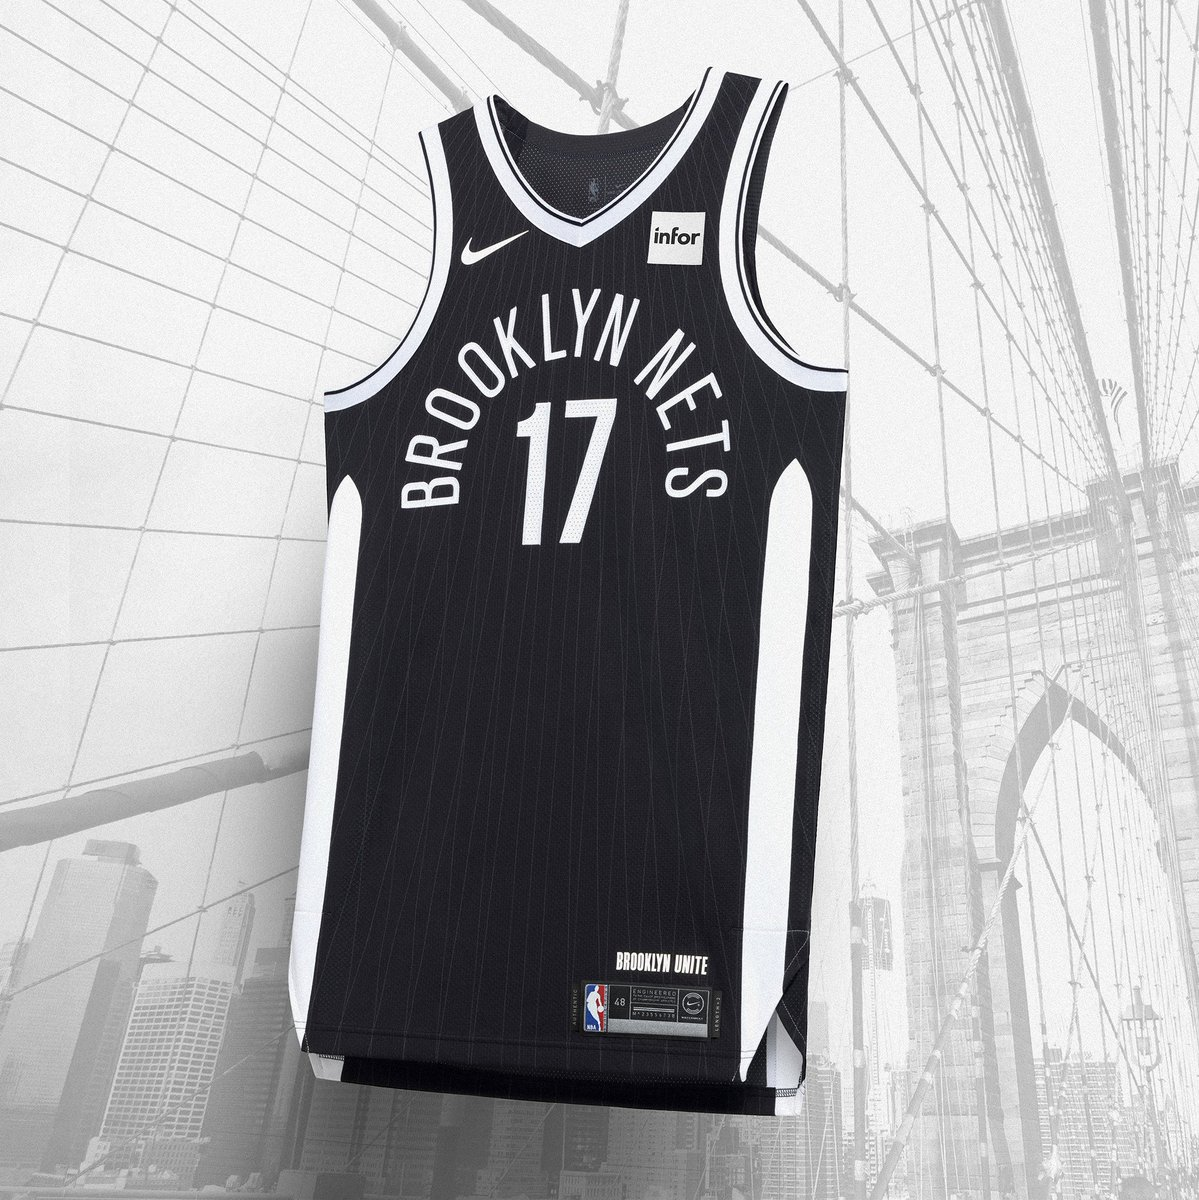 e4faeae9b Brooklyn Nets unveil new borough inspired uniforms